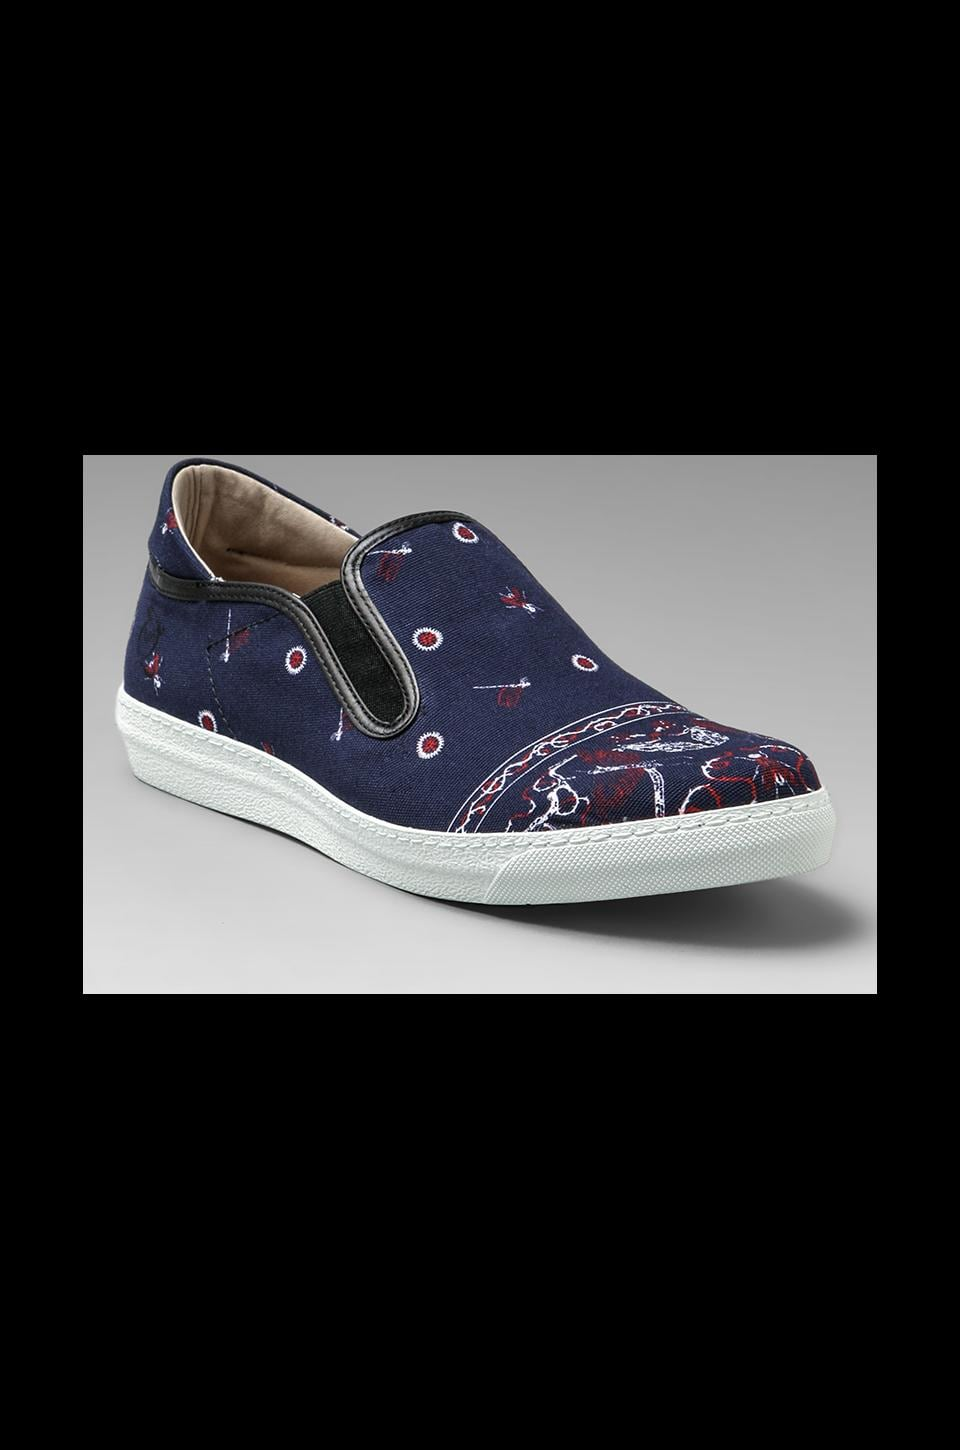 McQ Alexander McQueen Slip-On in Deep Navy